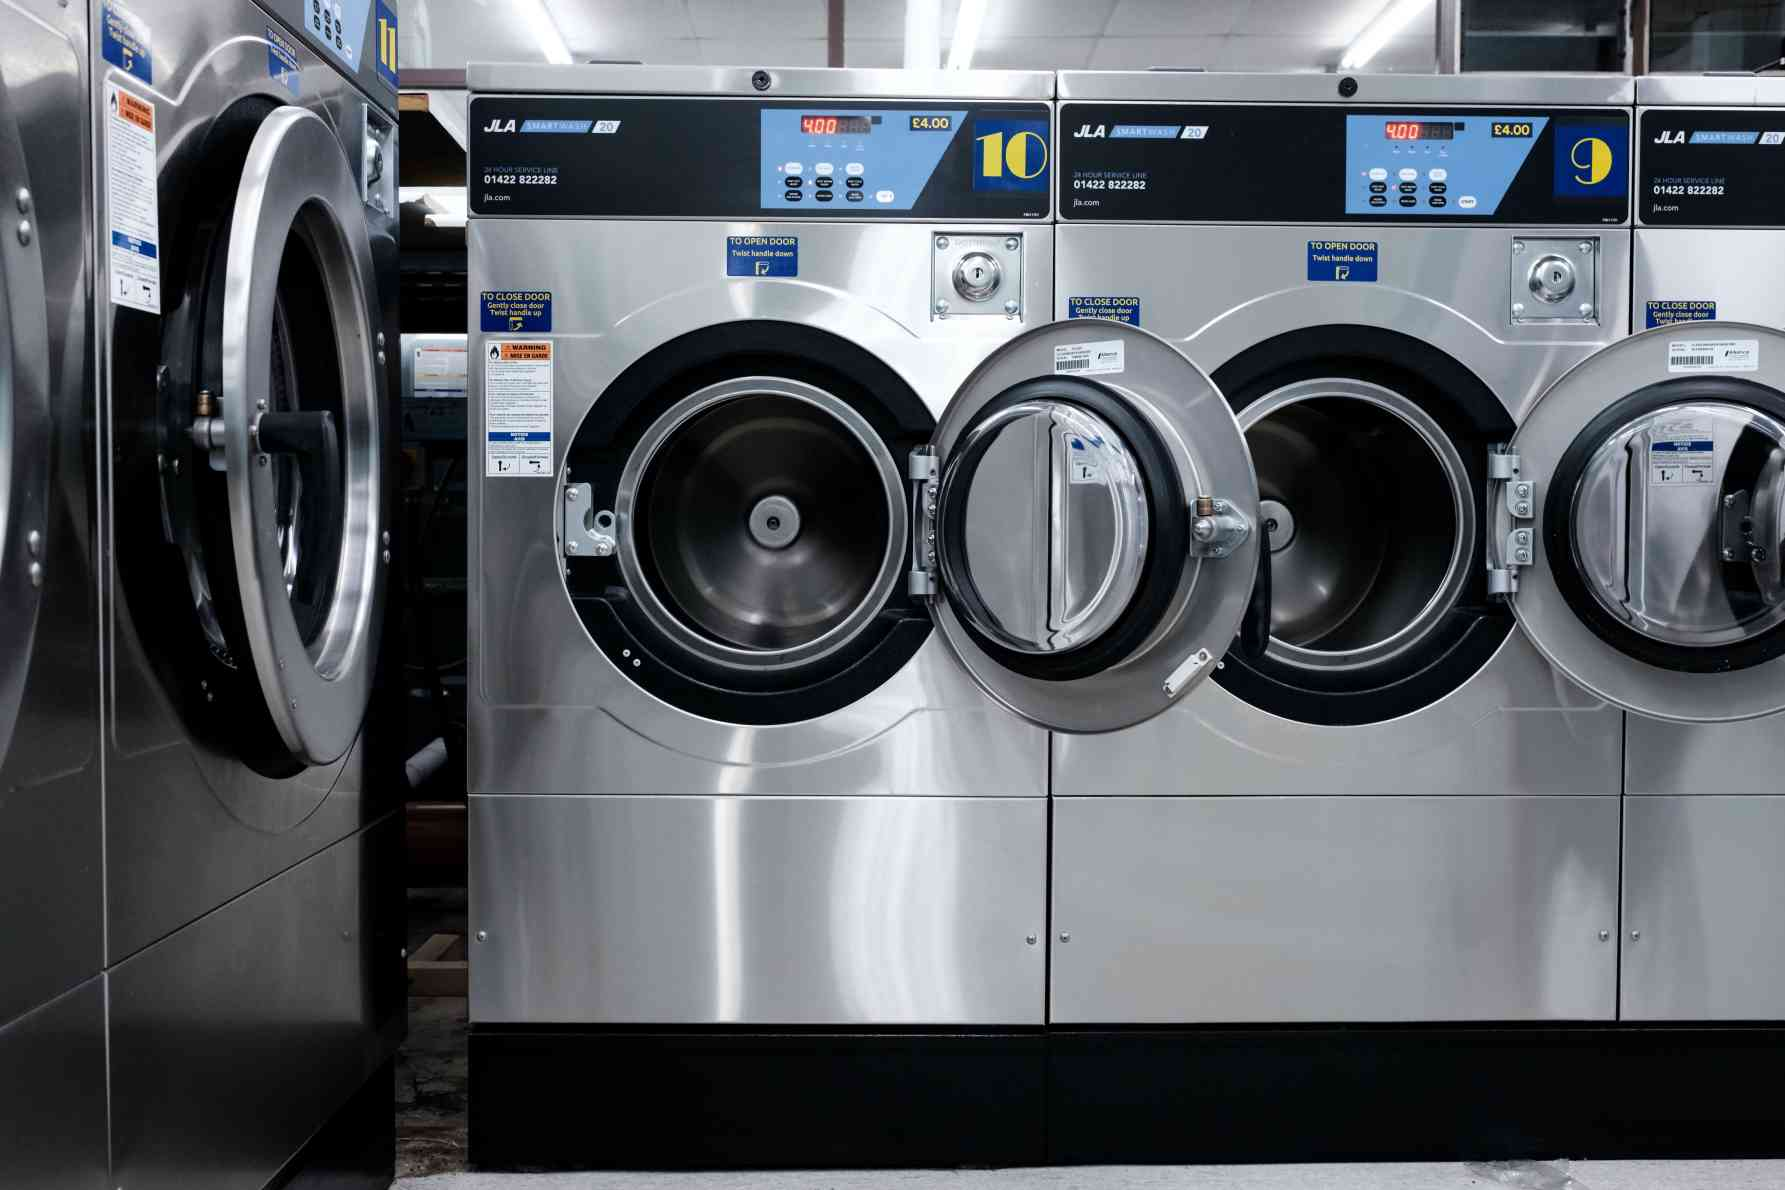 Semi-Automatic vs Fully Automatic Washing Machine: Complete Guide